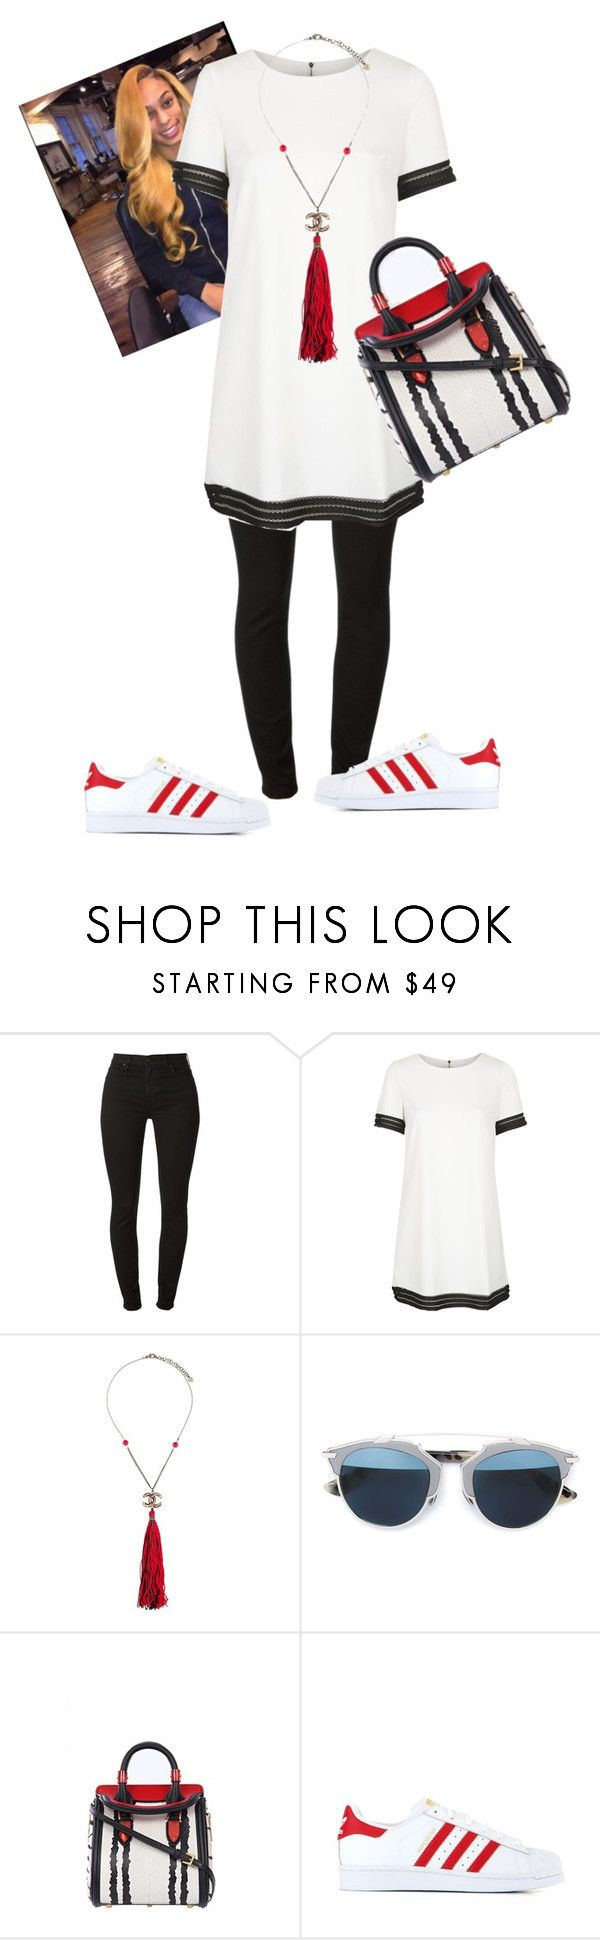 """""""Untitled #512"""" by cogic-fashion ❤ liked on Polyvore featuring 7 For All Mankind, Rare London, Chanel, Christian Dior, Alexander McQueen and adidas Originals"""